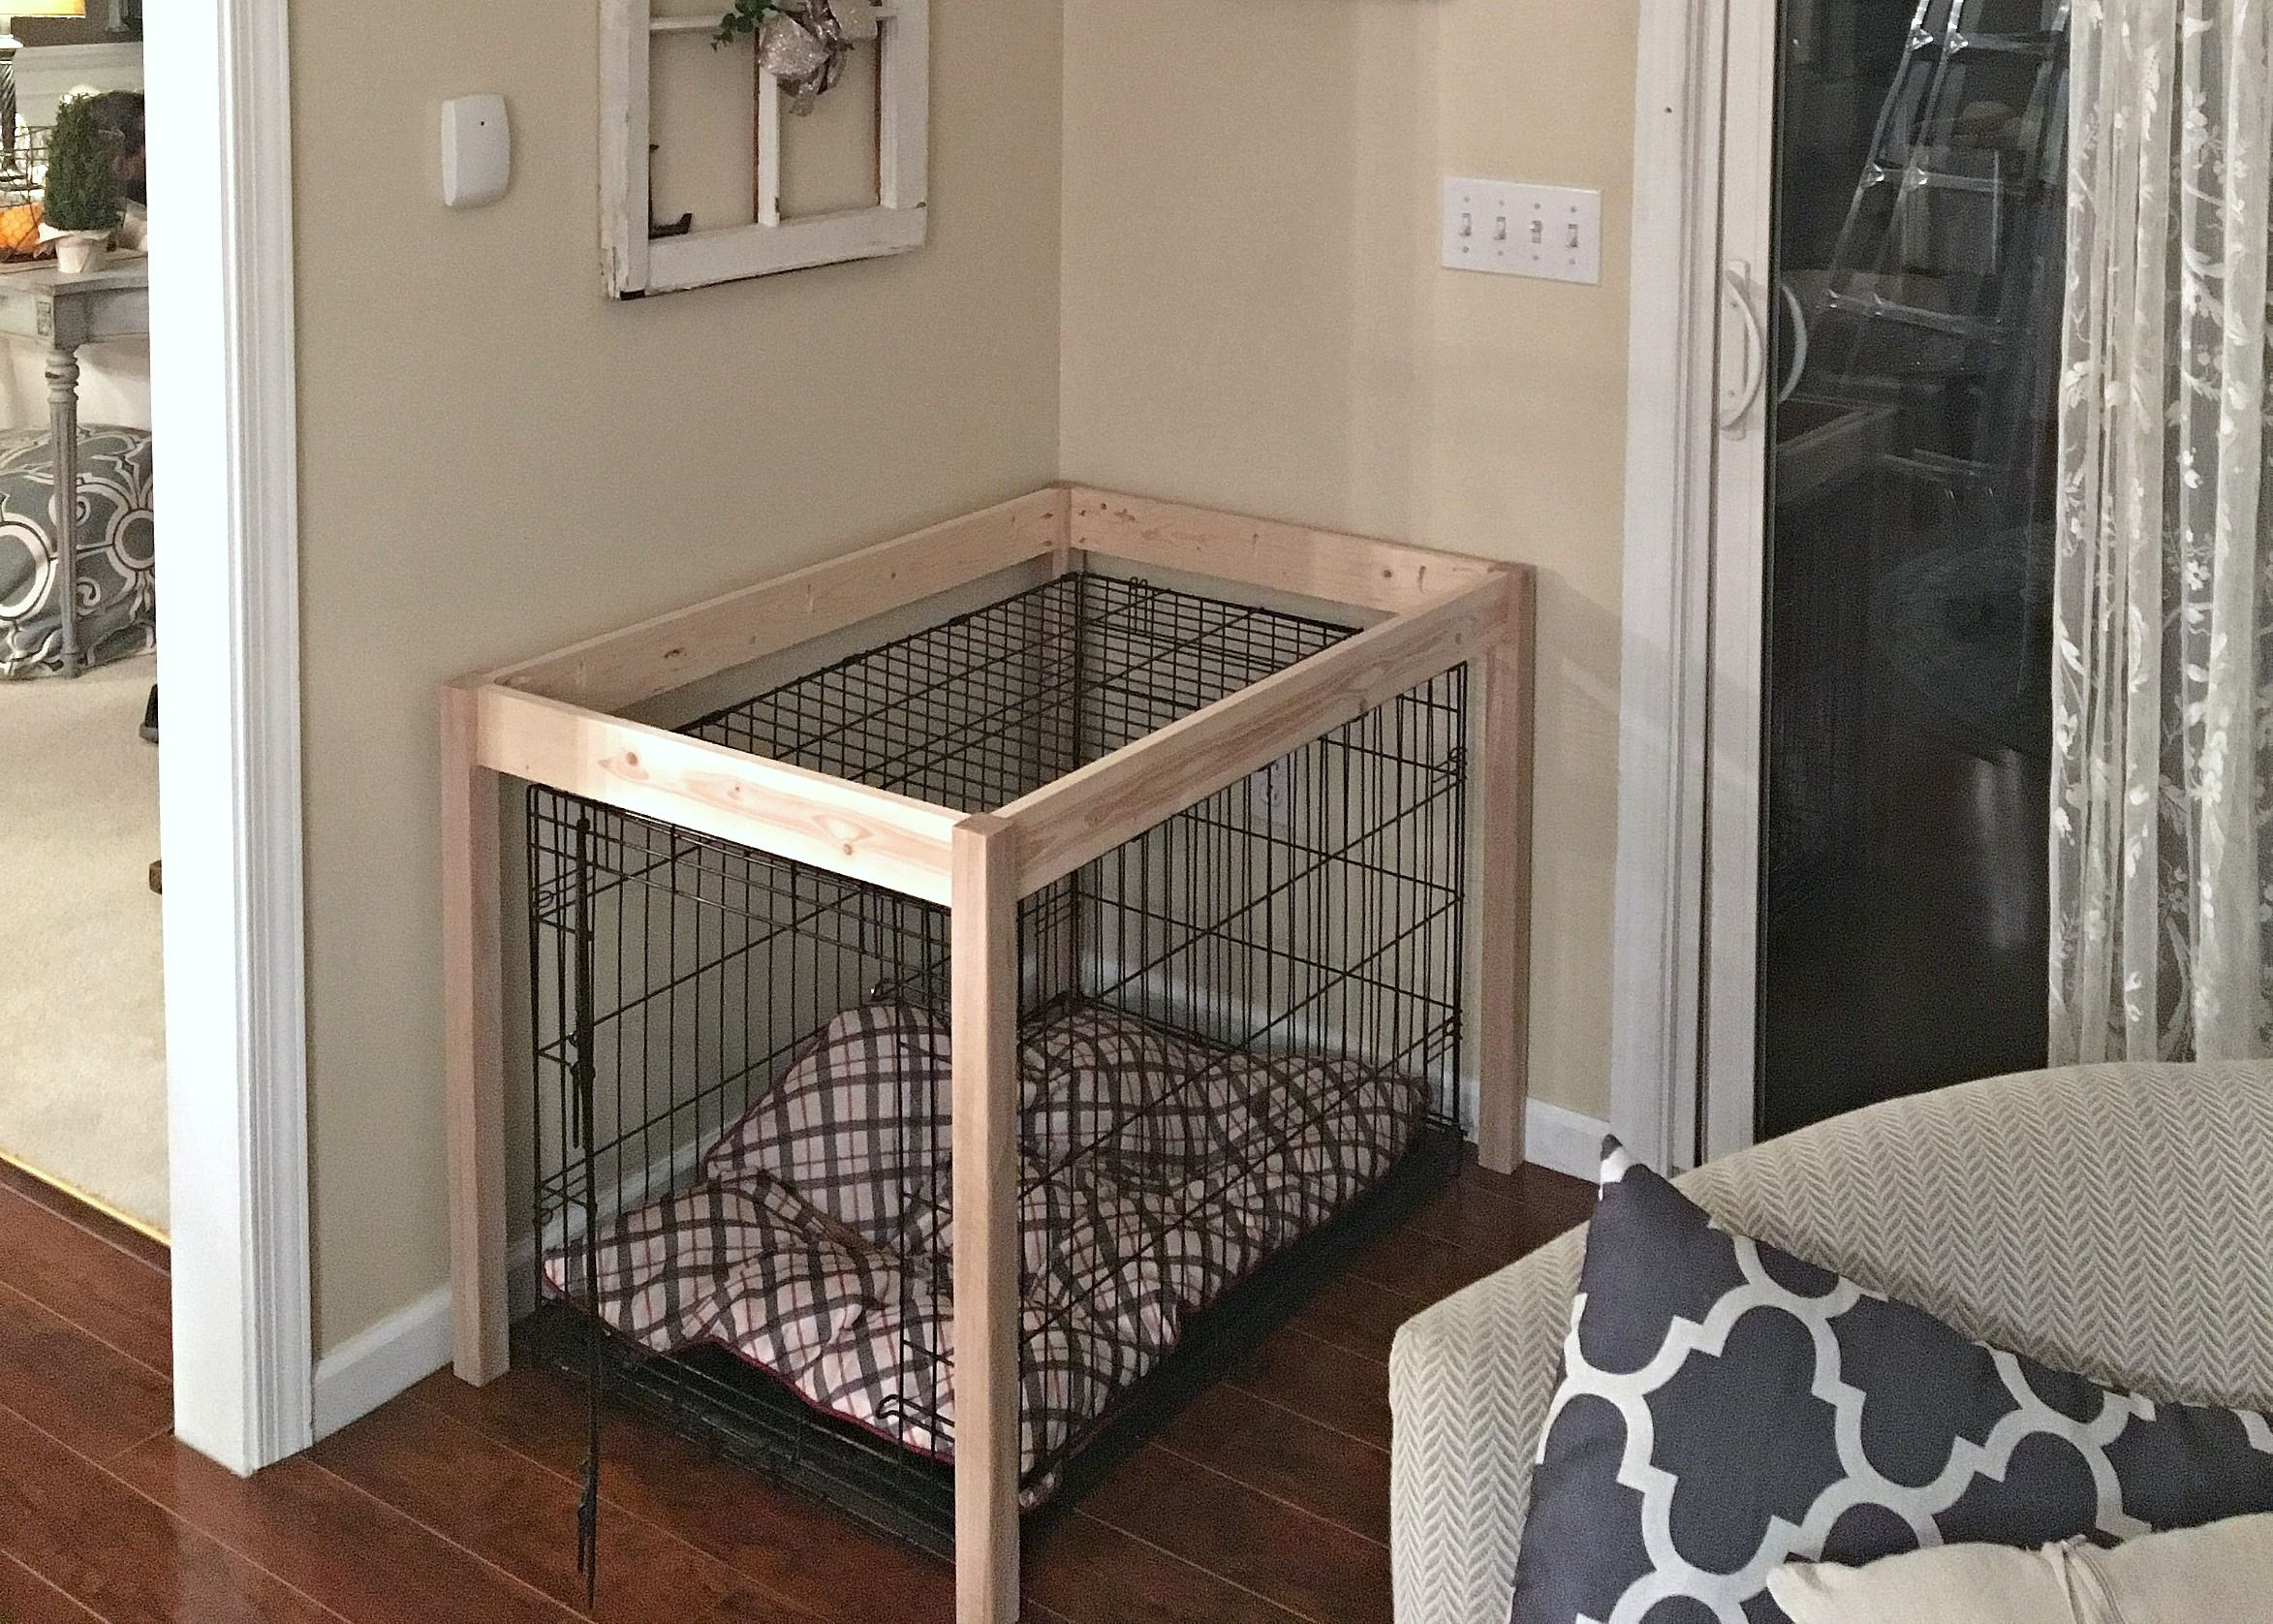 Diy dog crate hack with images diy dog crate crate